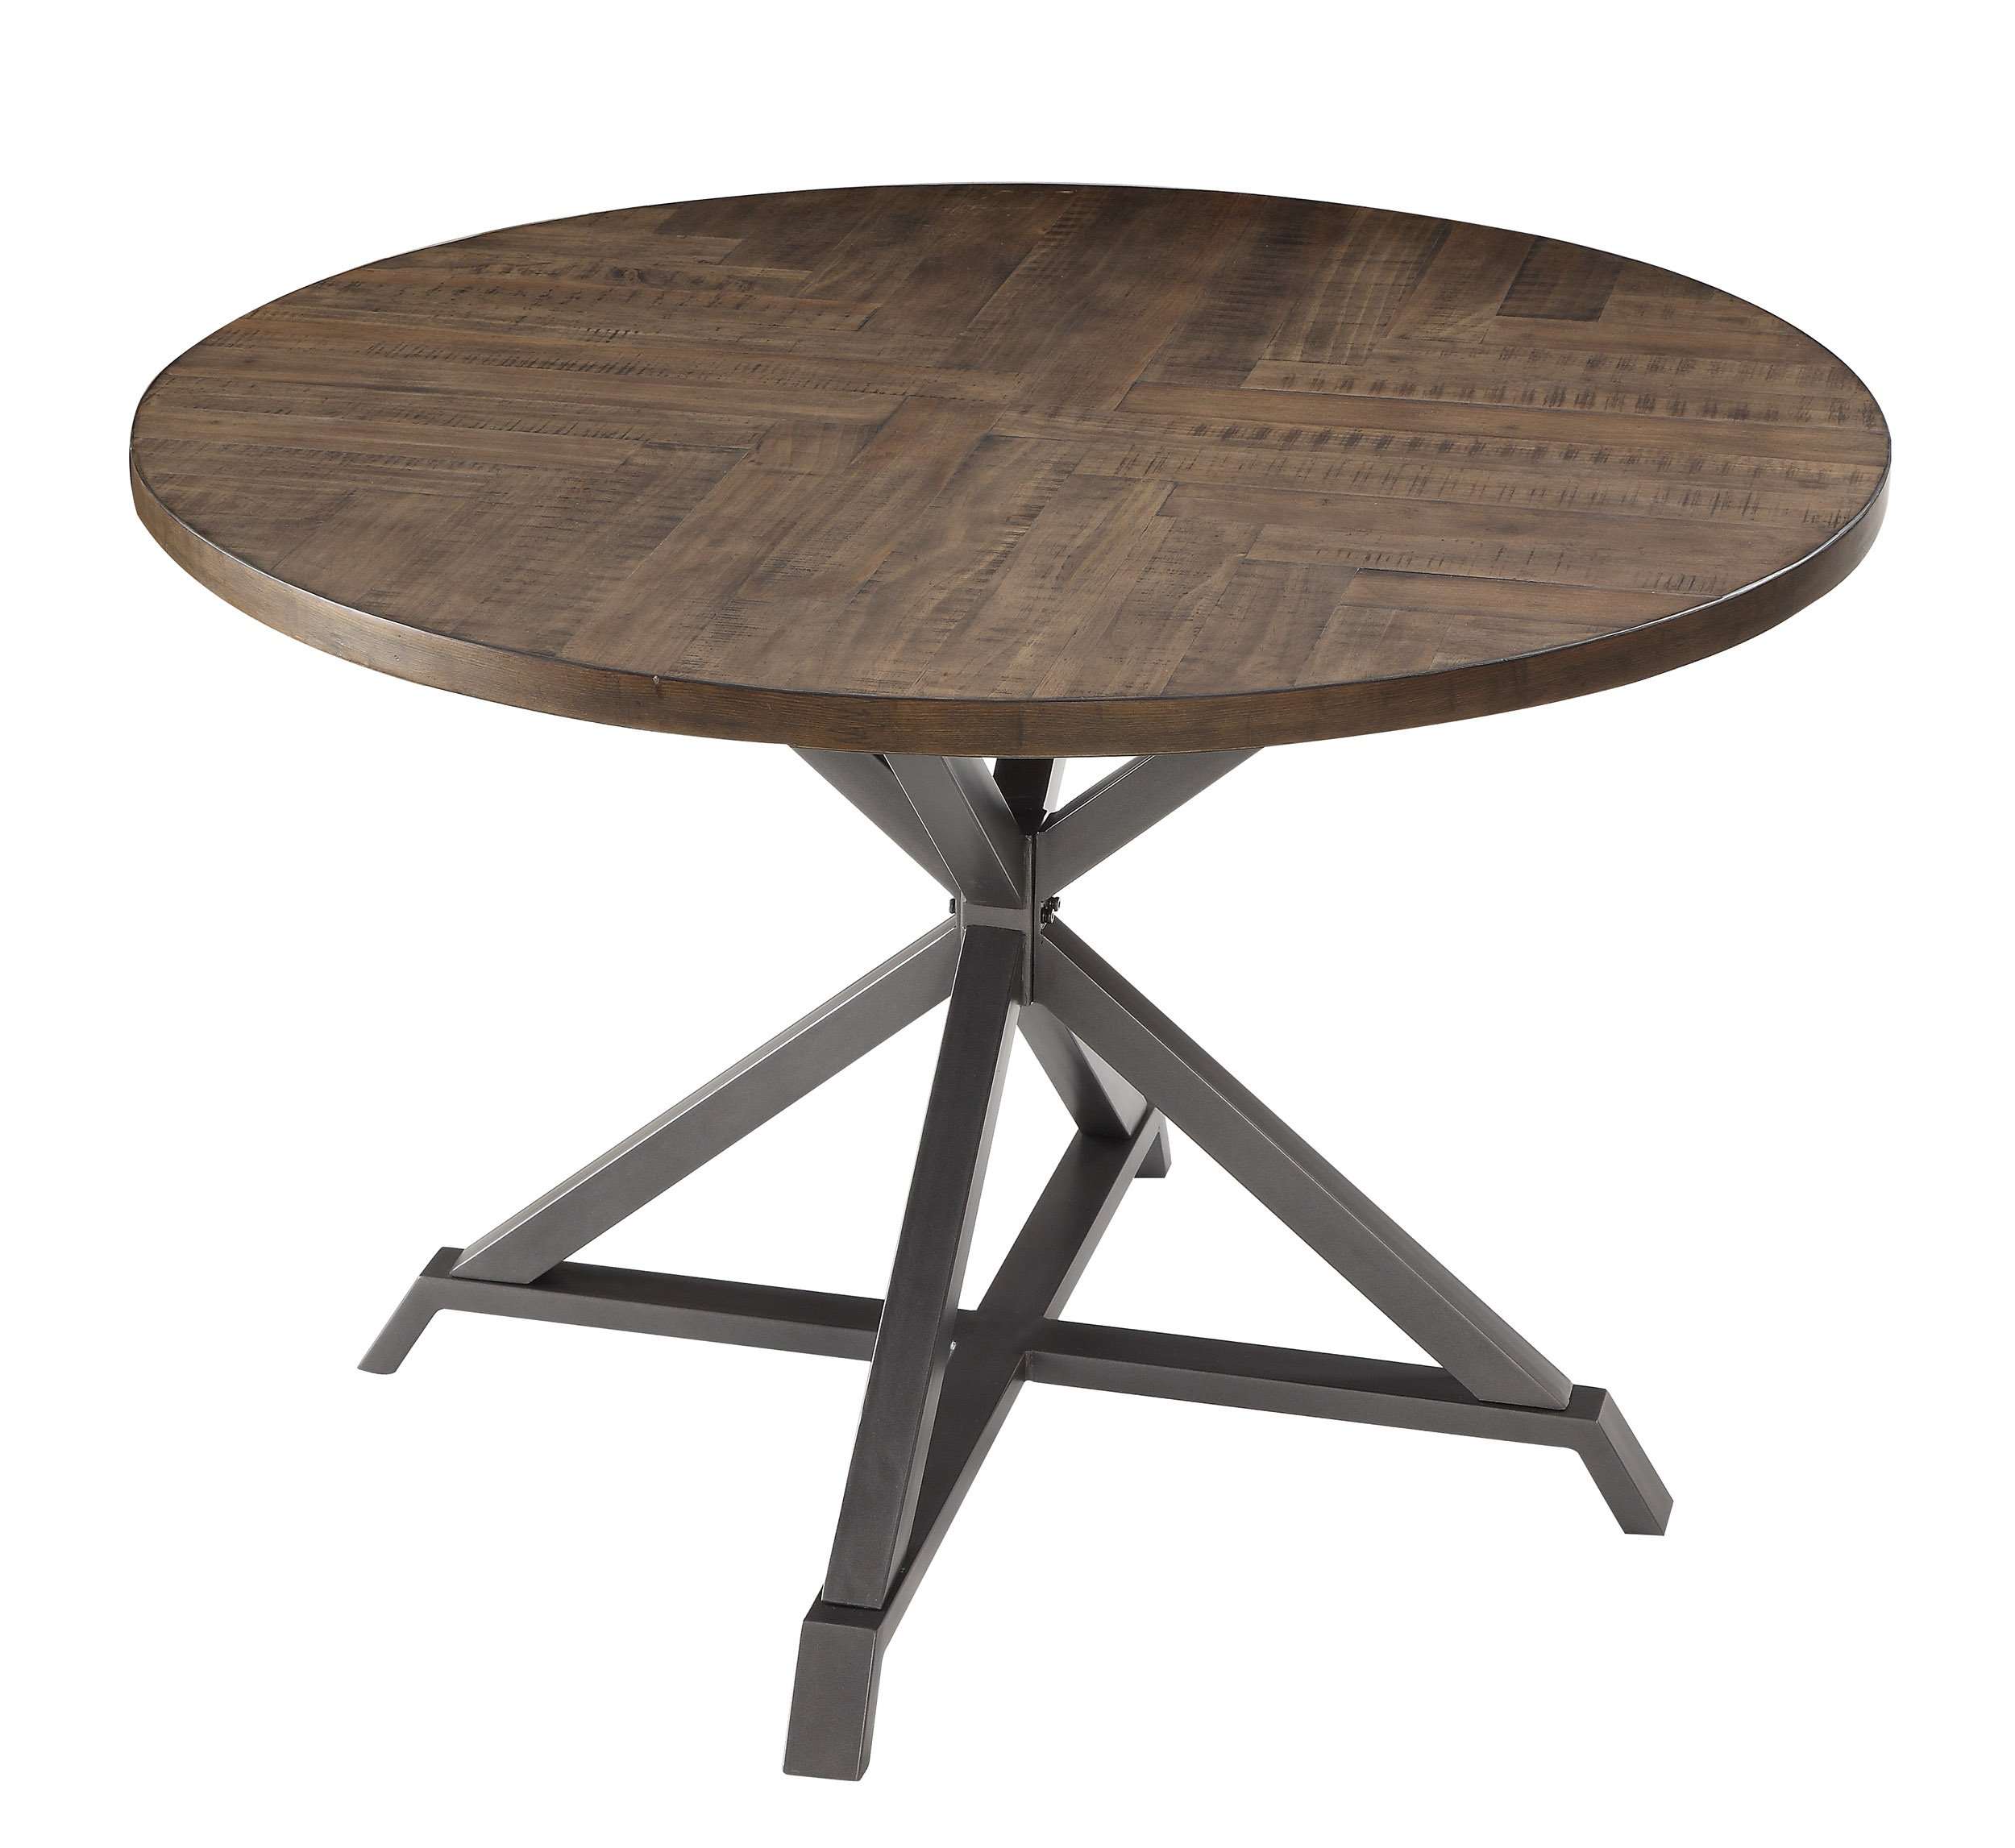 Homelegance Fideo 45'' Round Industrial Style Dining Table, Pine by Homelegance (Image #1)